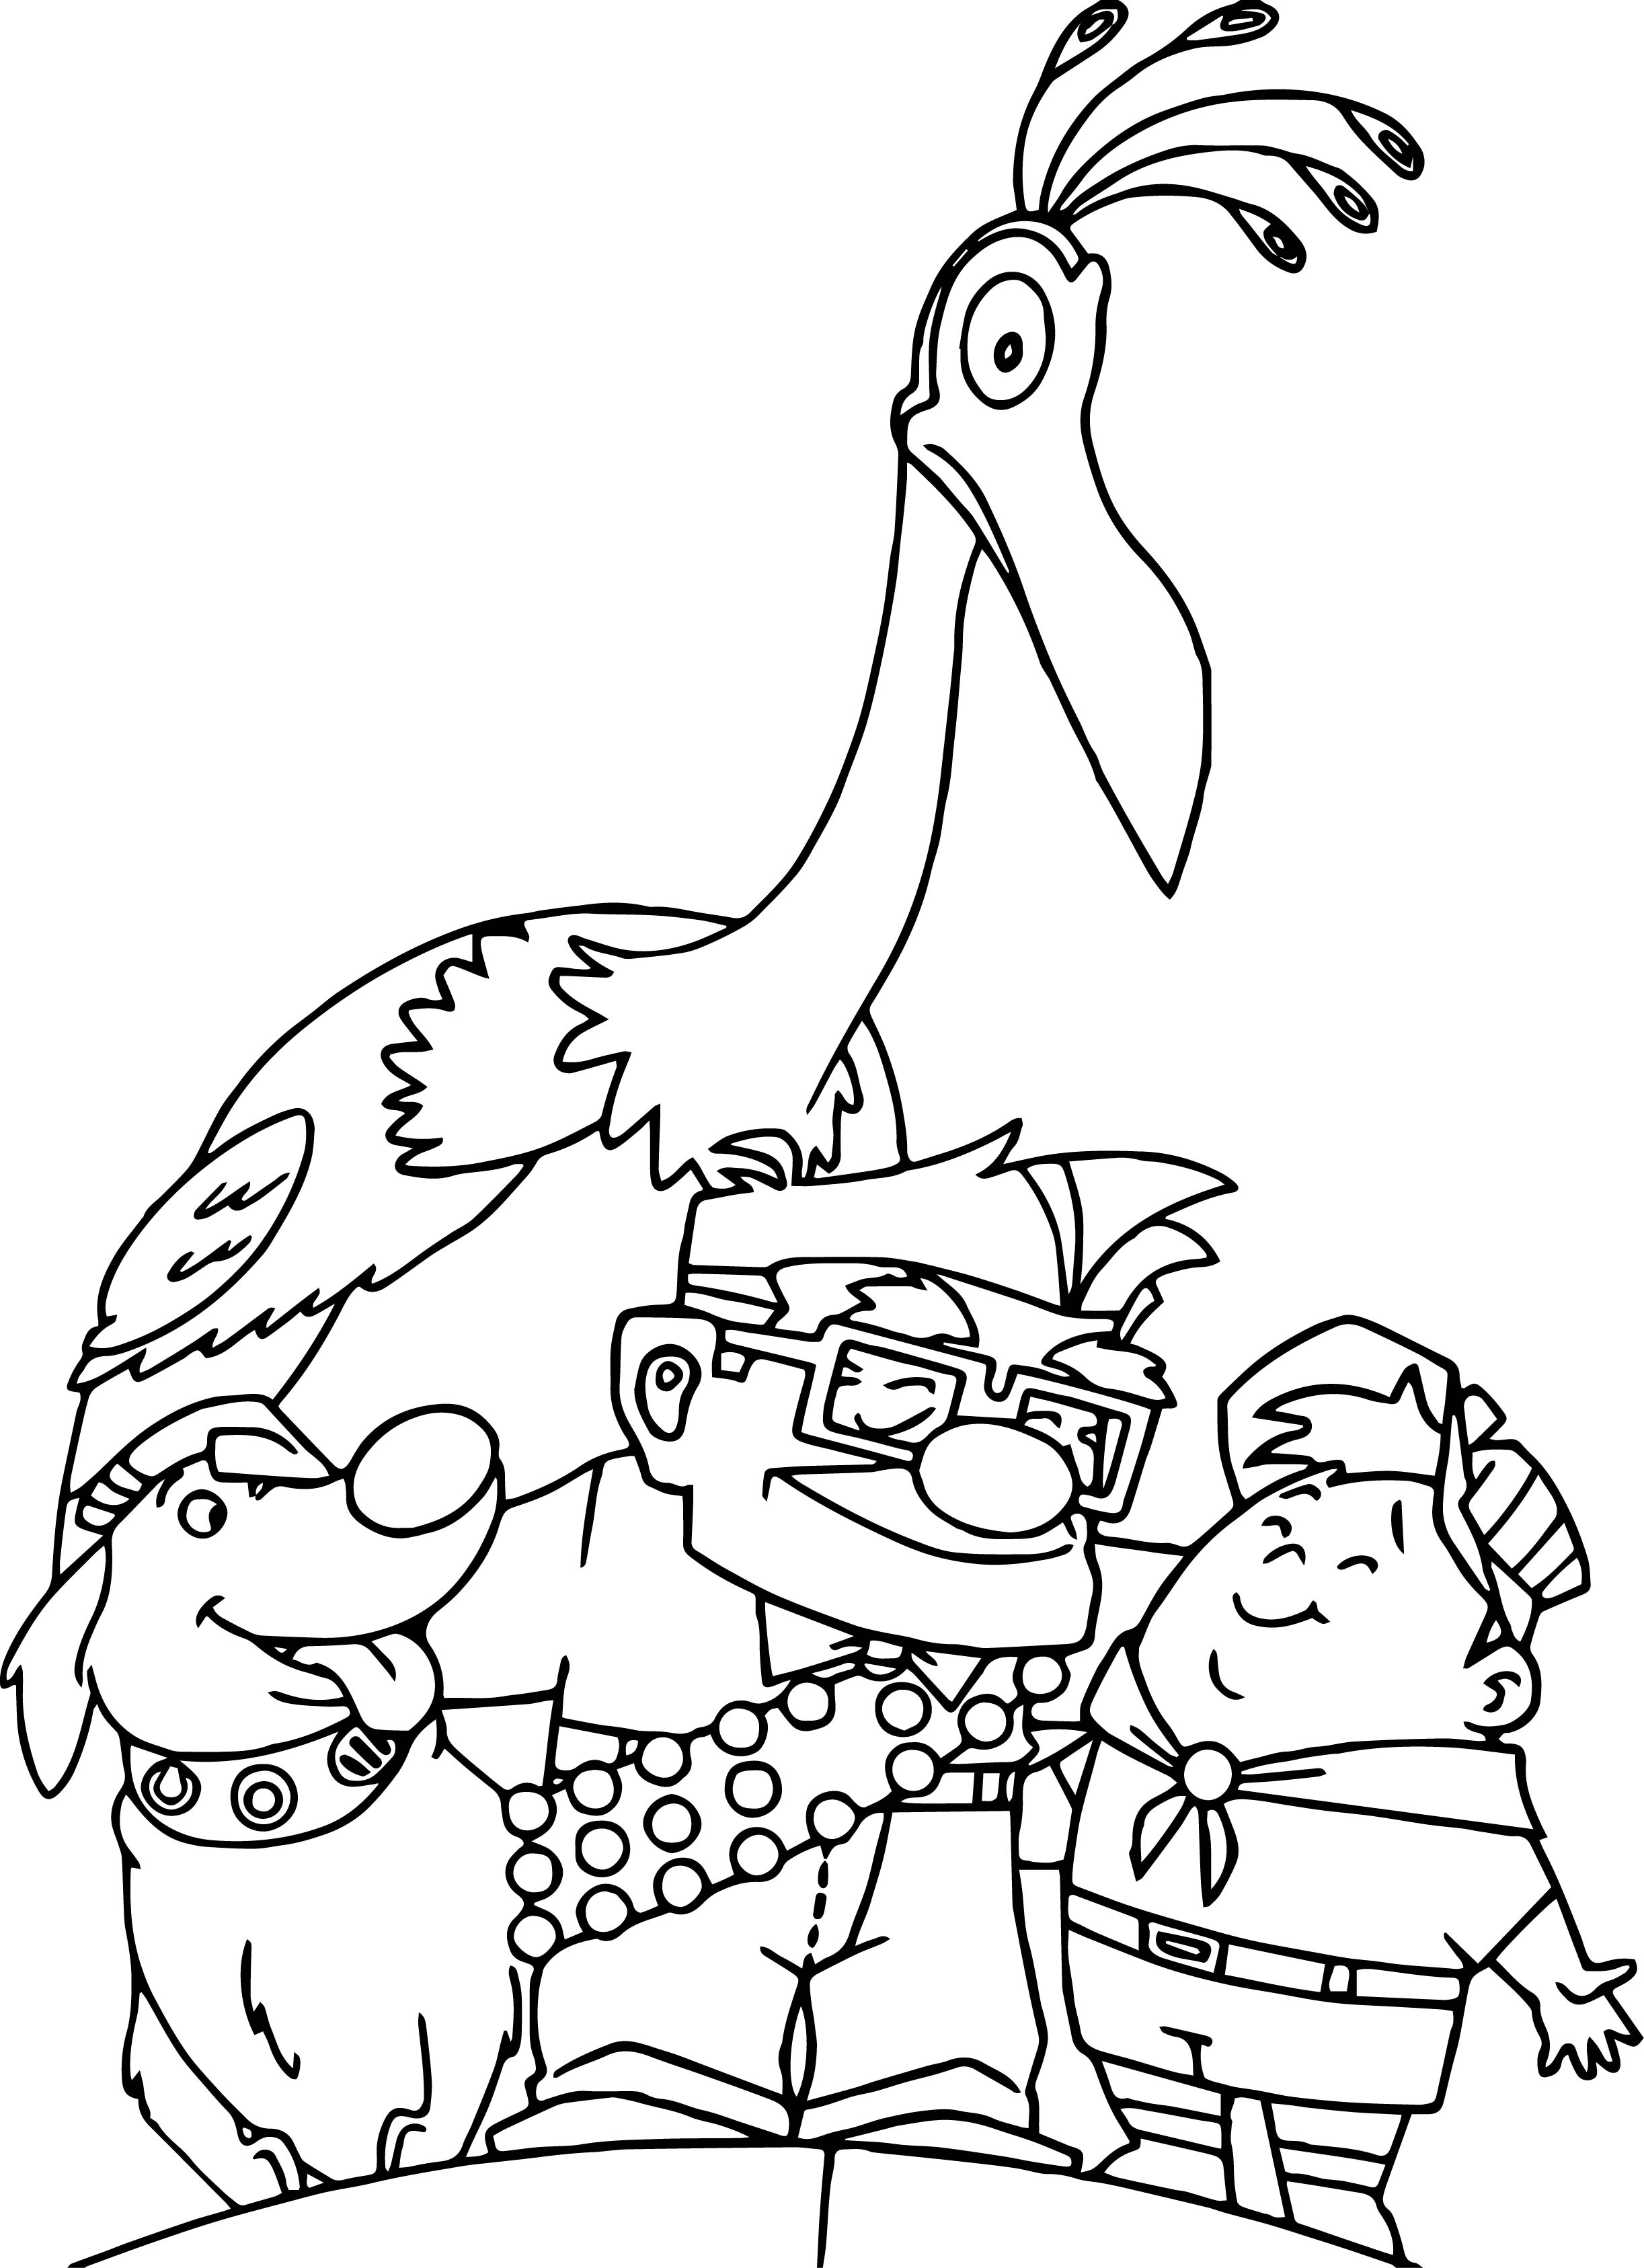 21 Up Coloring Pages Selection | FREE COLORING PAGES - Part 3